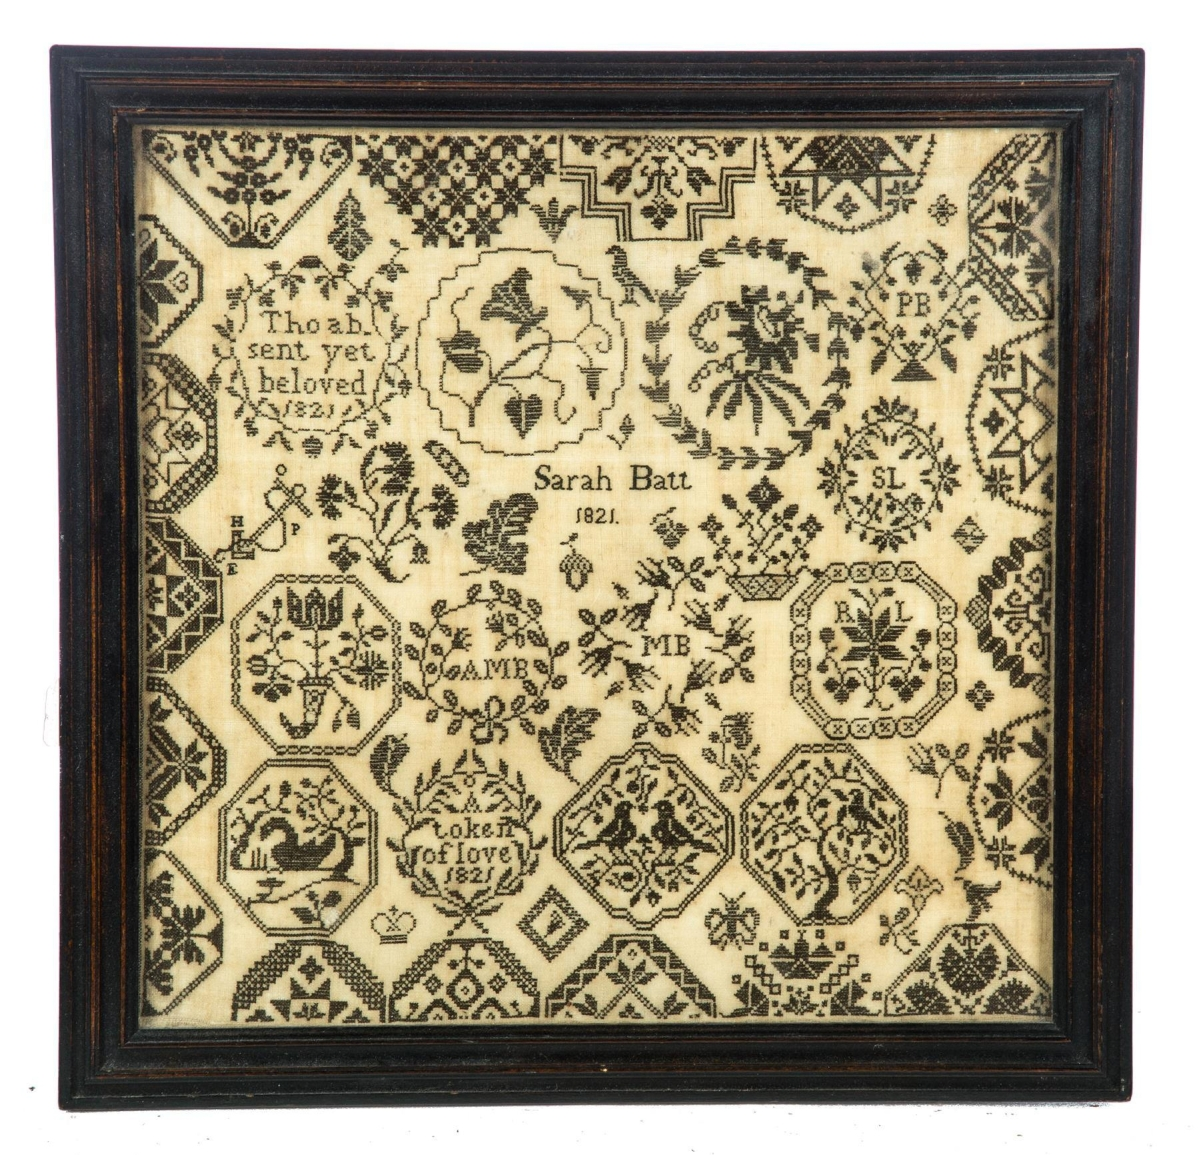 """""""I thought this would do well but I didn't think it would do that well,"""" Jeffers said of this framed motif sampler by Sarah Batt that sold for $4,063, the highest price in the sale. An American trade buyer acquired the English piece, which was dated 1821, worked in black petit point stitching on linen and featured medallions with flowers, birds, geometric patterns, verses and an anchor ($250/450)."""